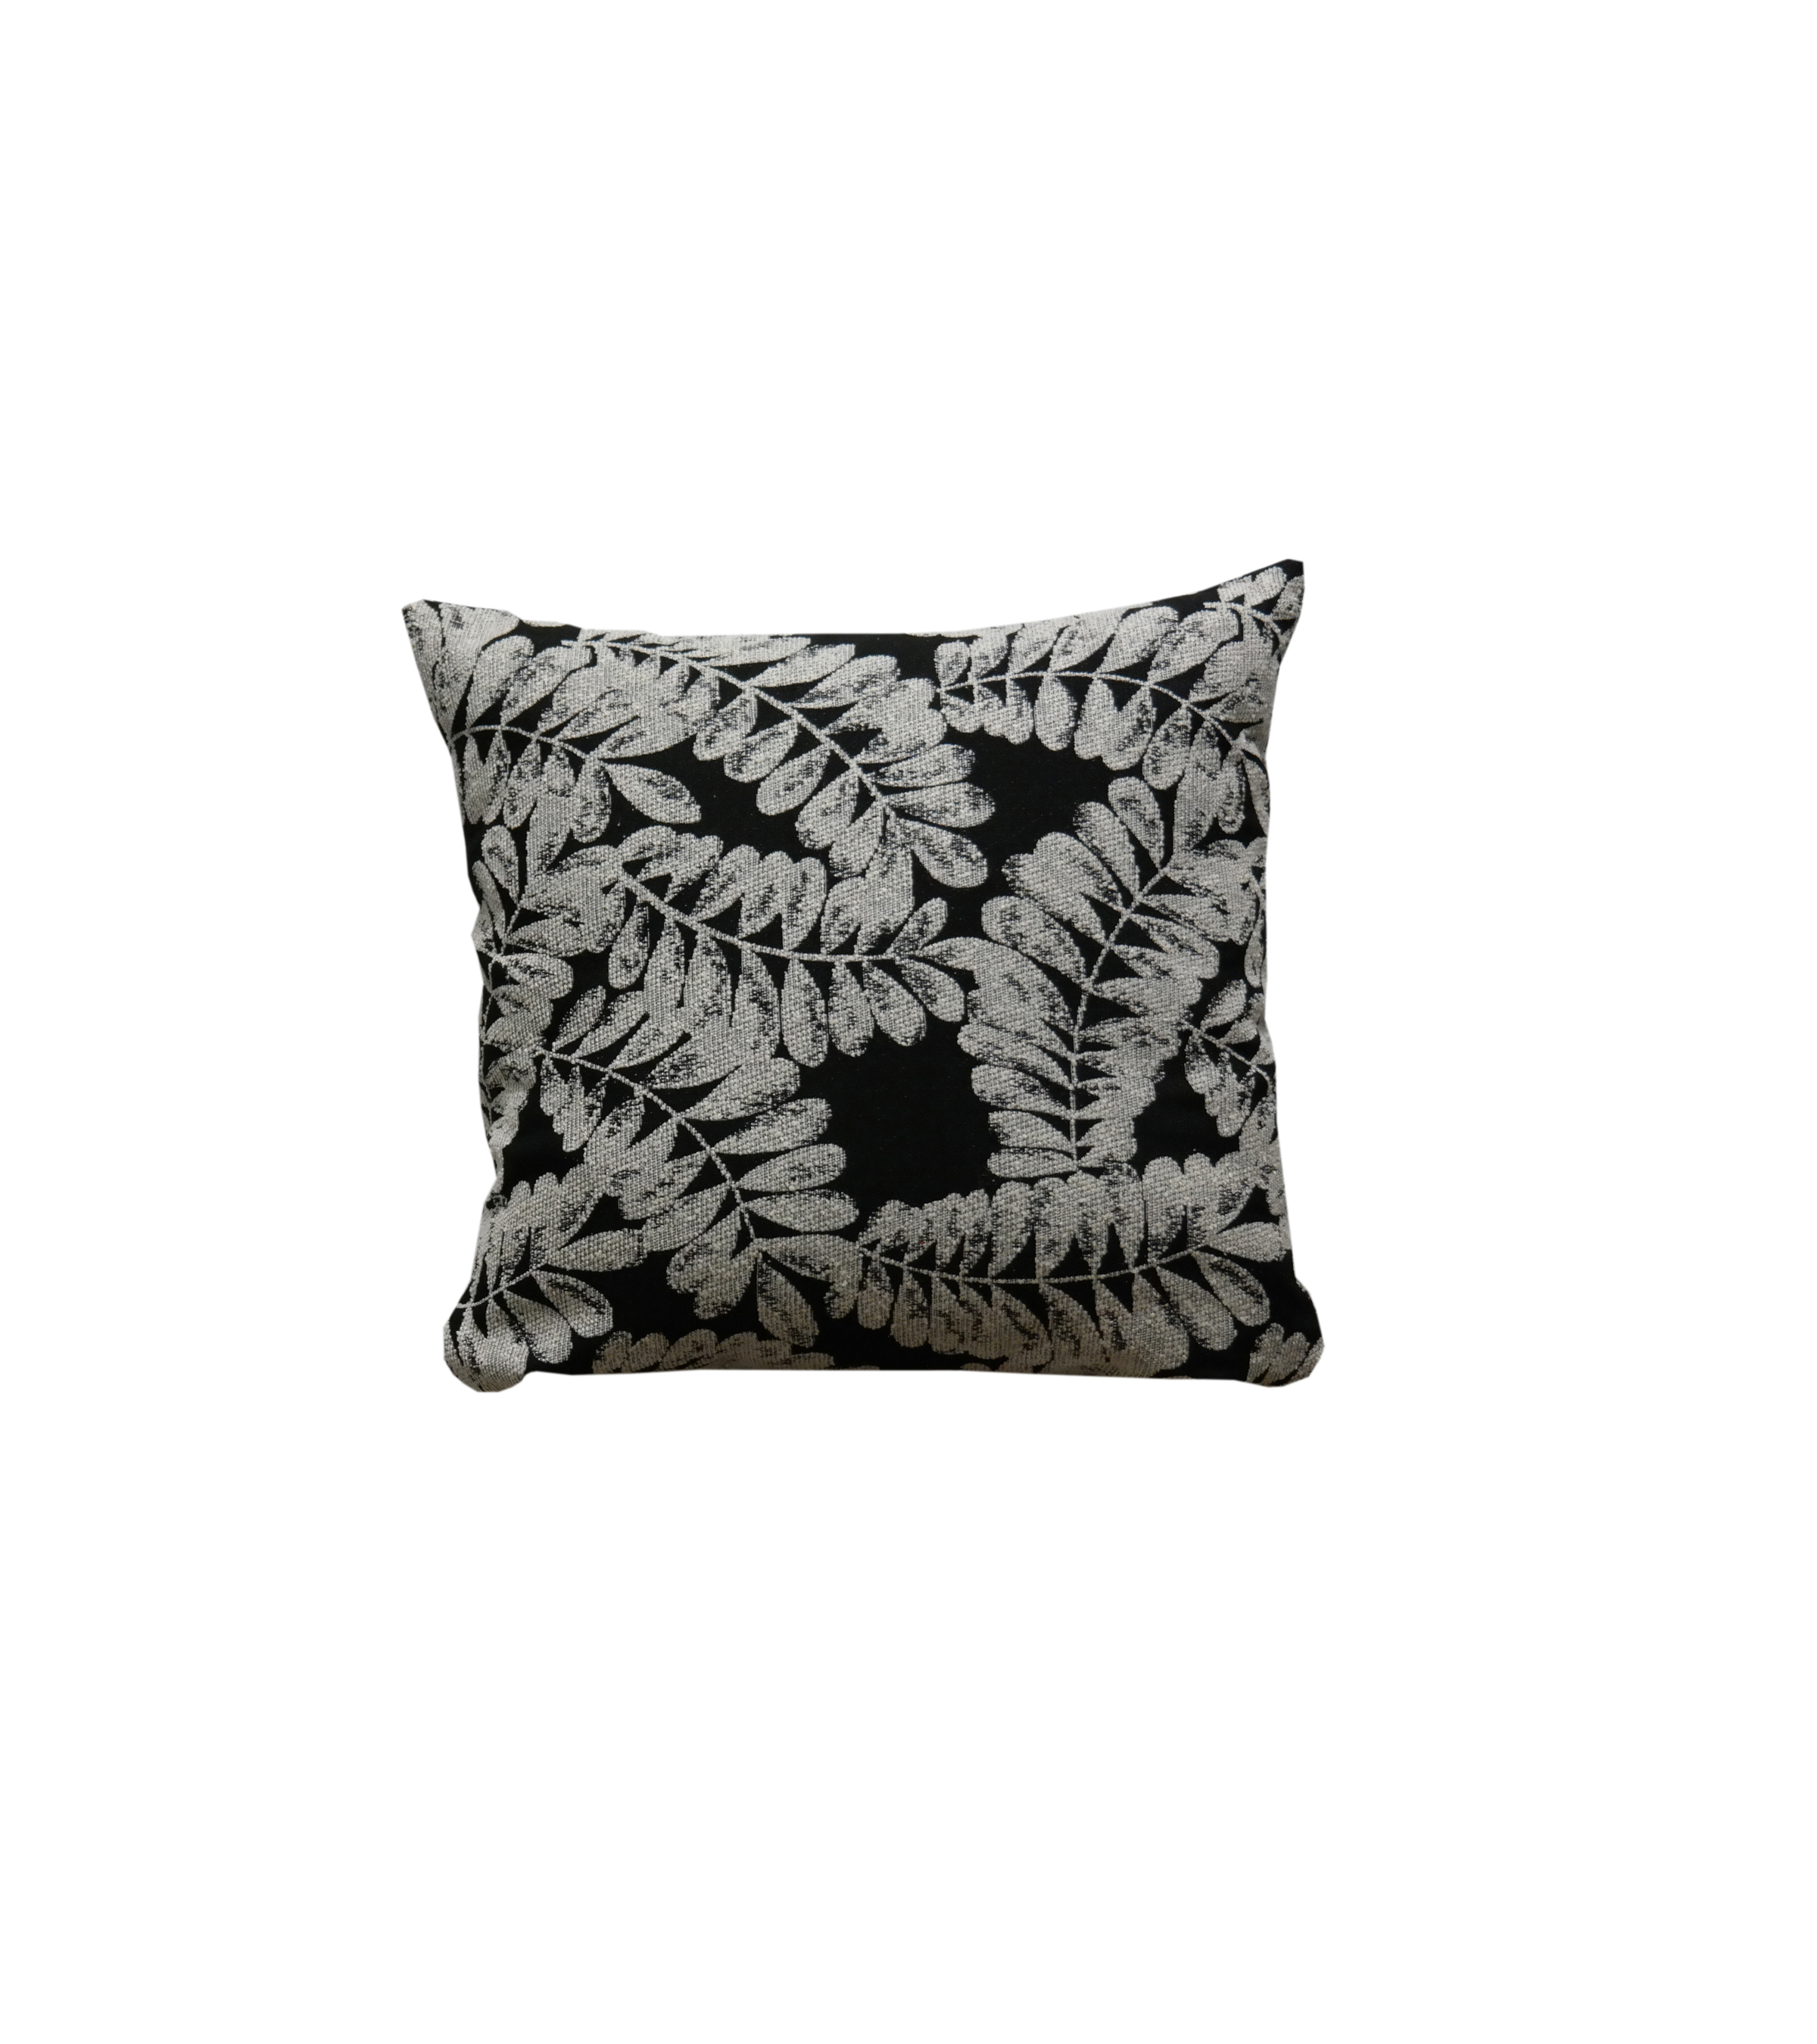 'Diamonds' cushion